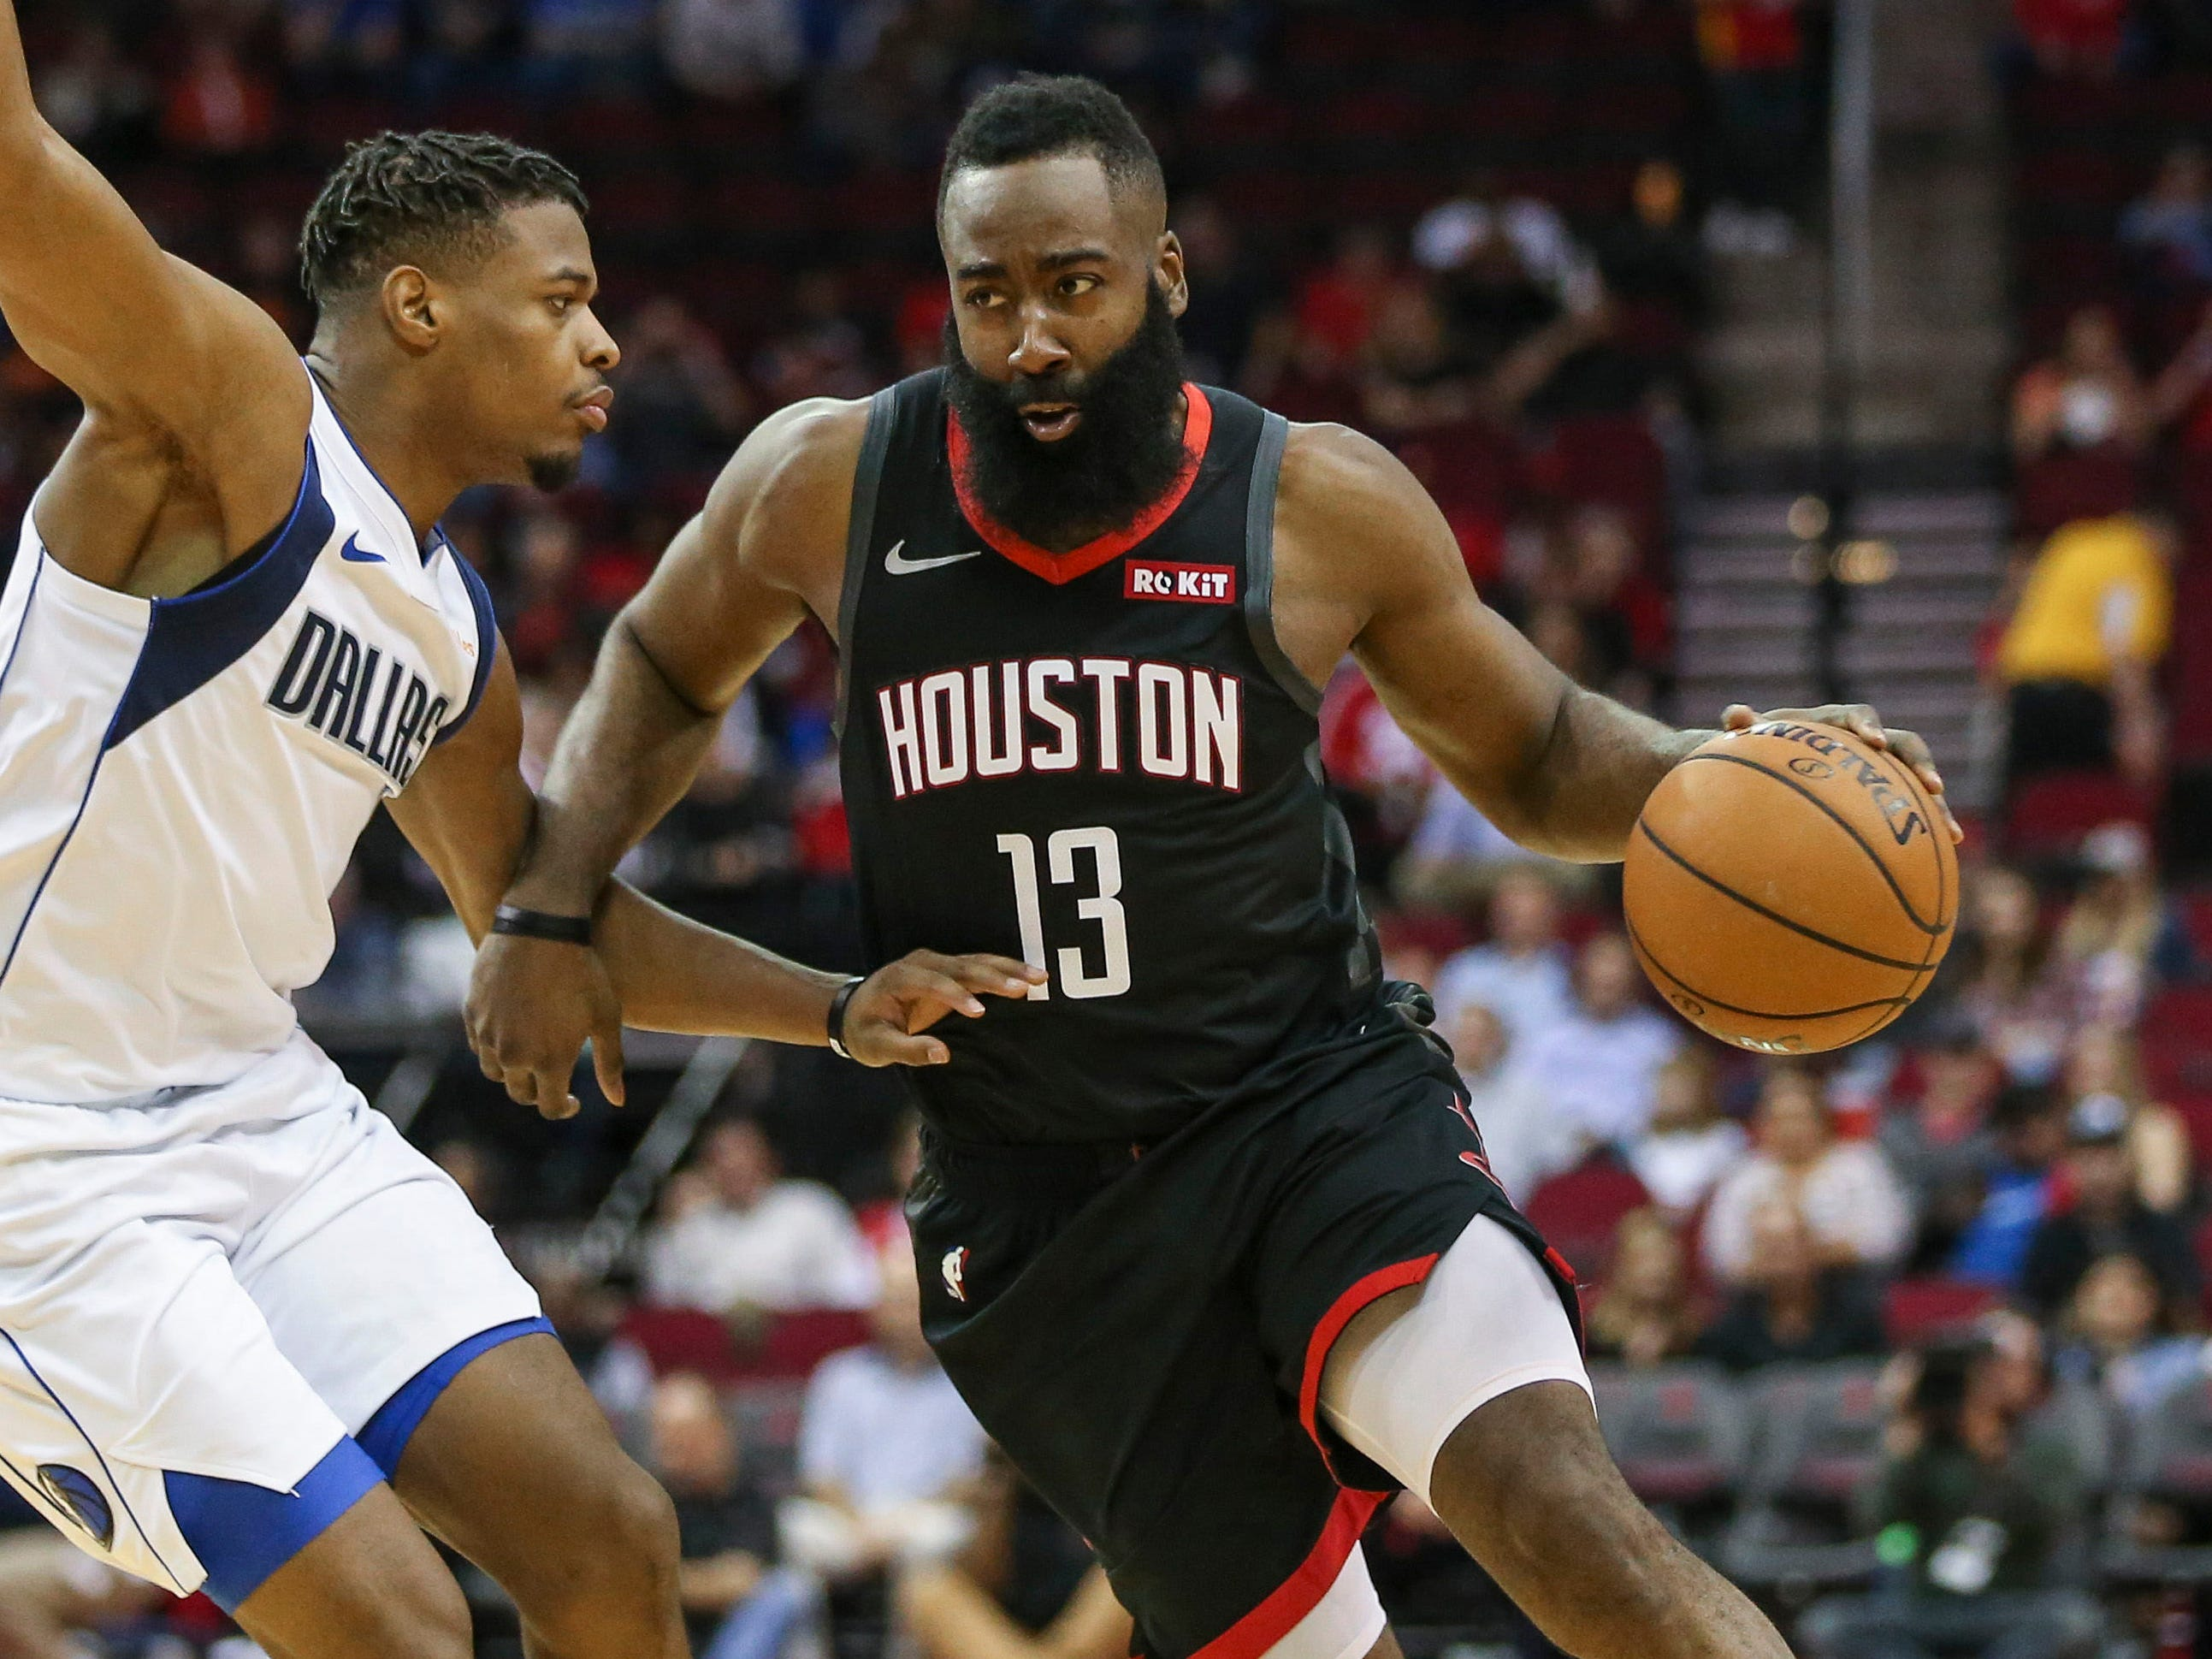 17. James Harden, Rockets (Nov. 28): 25 points, 17 assist, 11 rebounds in 128-108 loss to Mavericks.